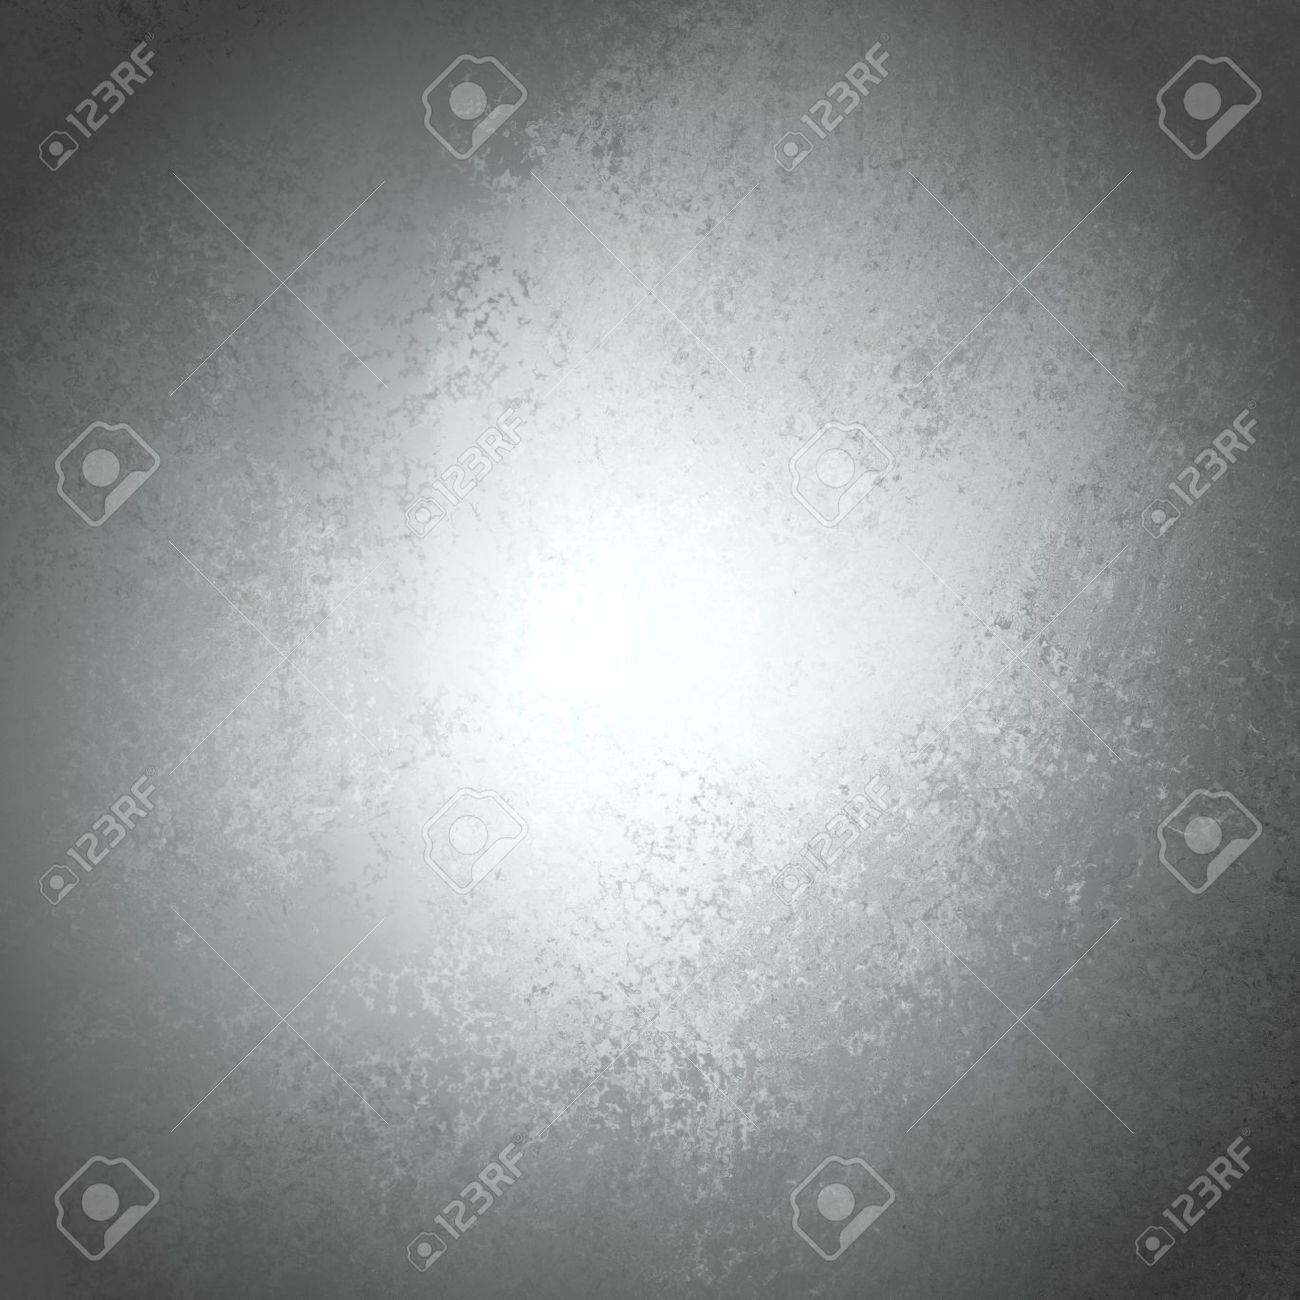 abstract black background, old black vignette border frame on white gray background, vintage grunge background texture design, black and white monochrome background for printing brochures or papers Stock Photo - 17504128